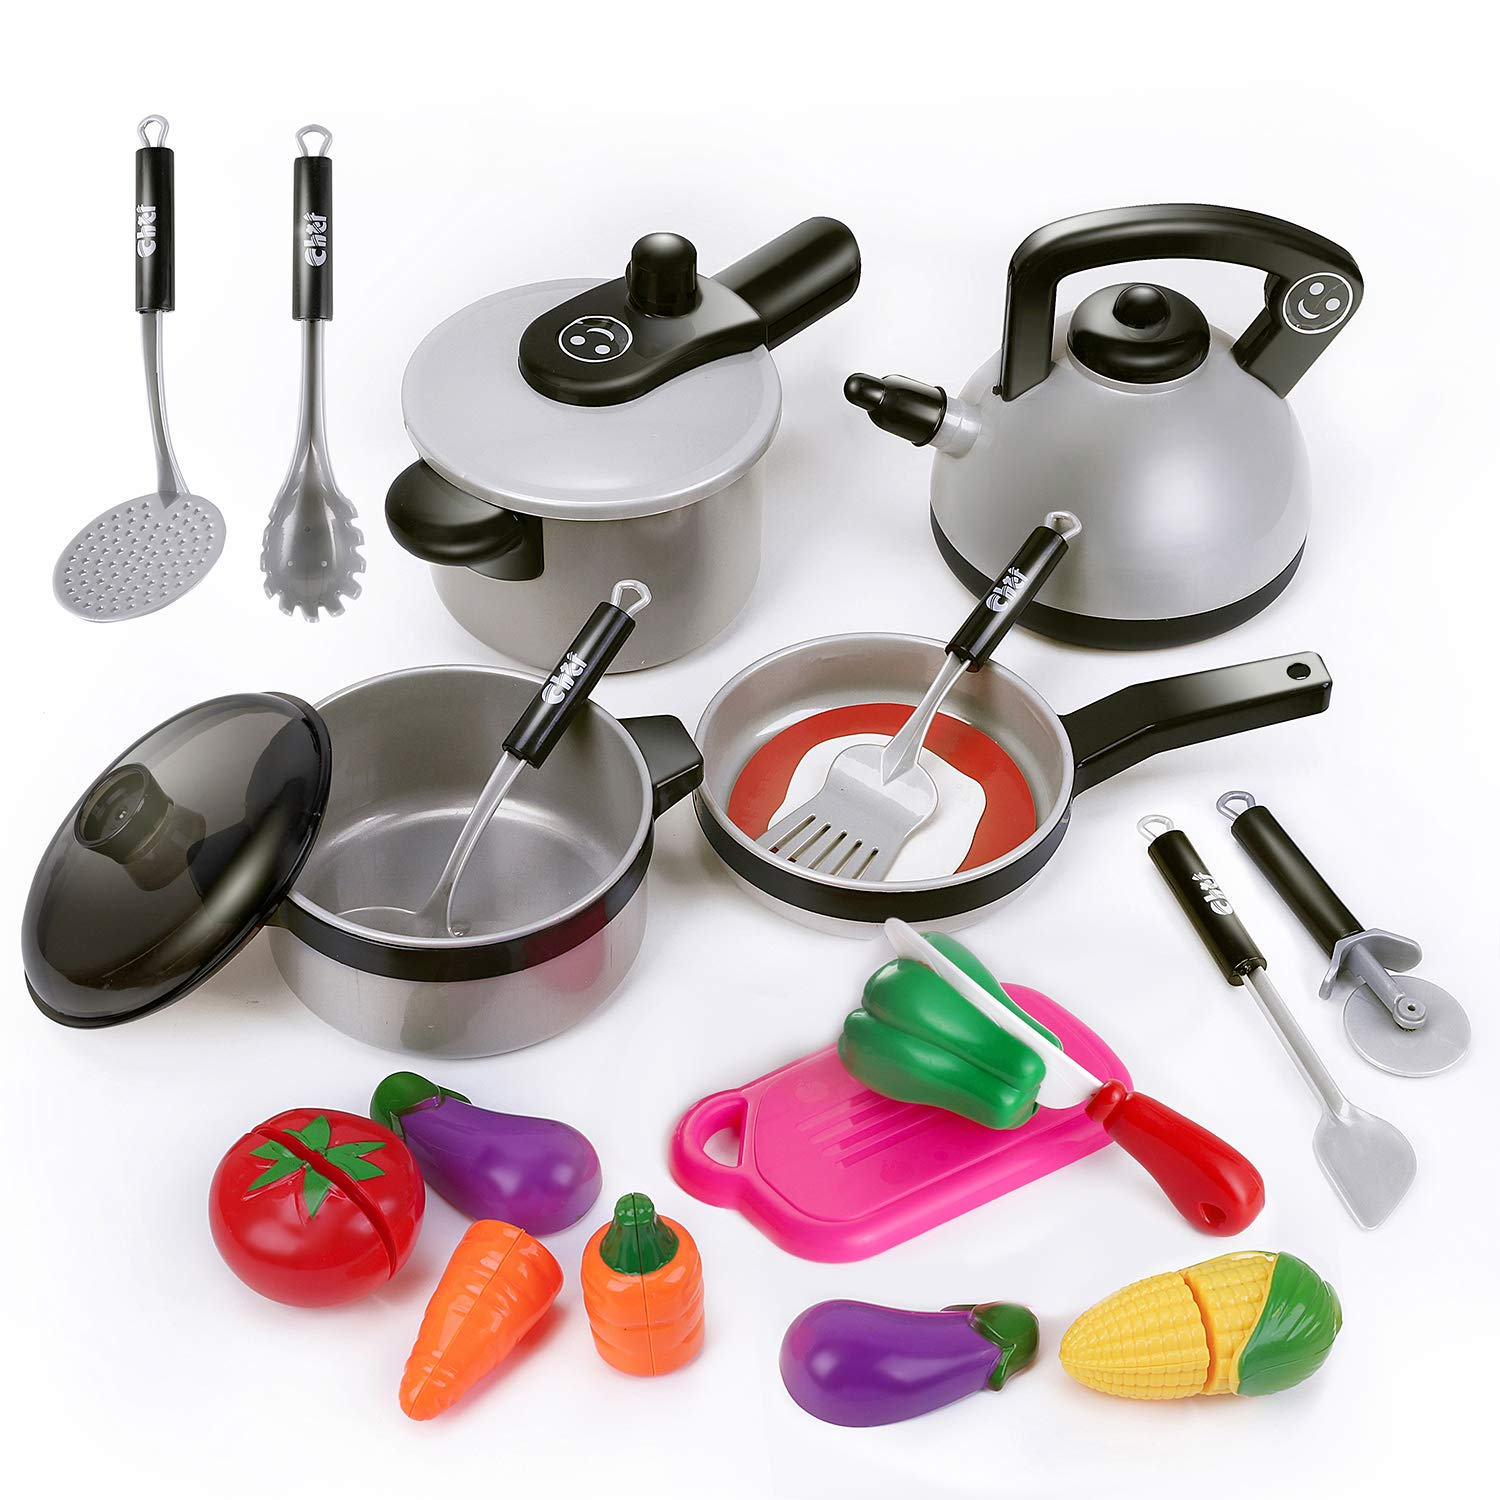 iPlay, iLearn Kids Kitchen Pretend Play Toys, Cooking Set, Pots and Pans, Cookware Playset, Healthy Cutting Vegetables, Knife, Utensils, Learning Gift for 3, 4, 5 Years Old Baby, Girls, Boys, Toddlers by iPlay, iLearn